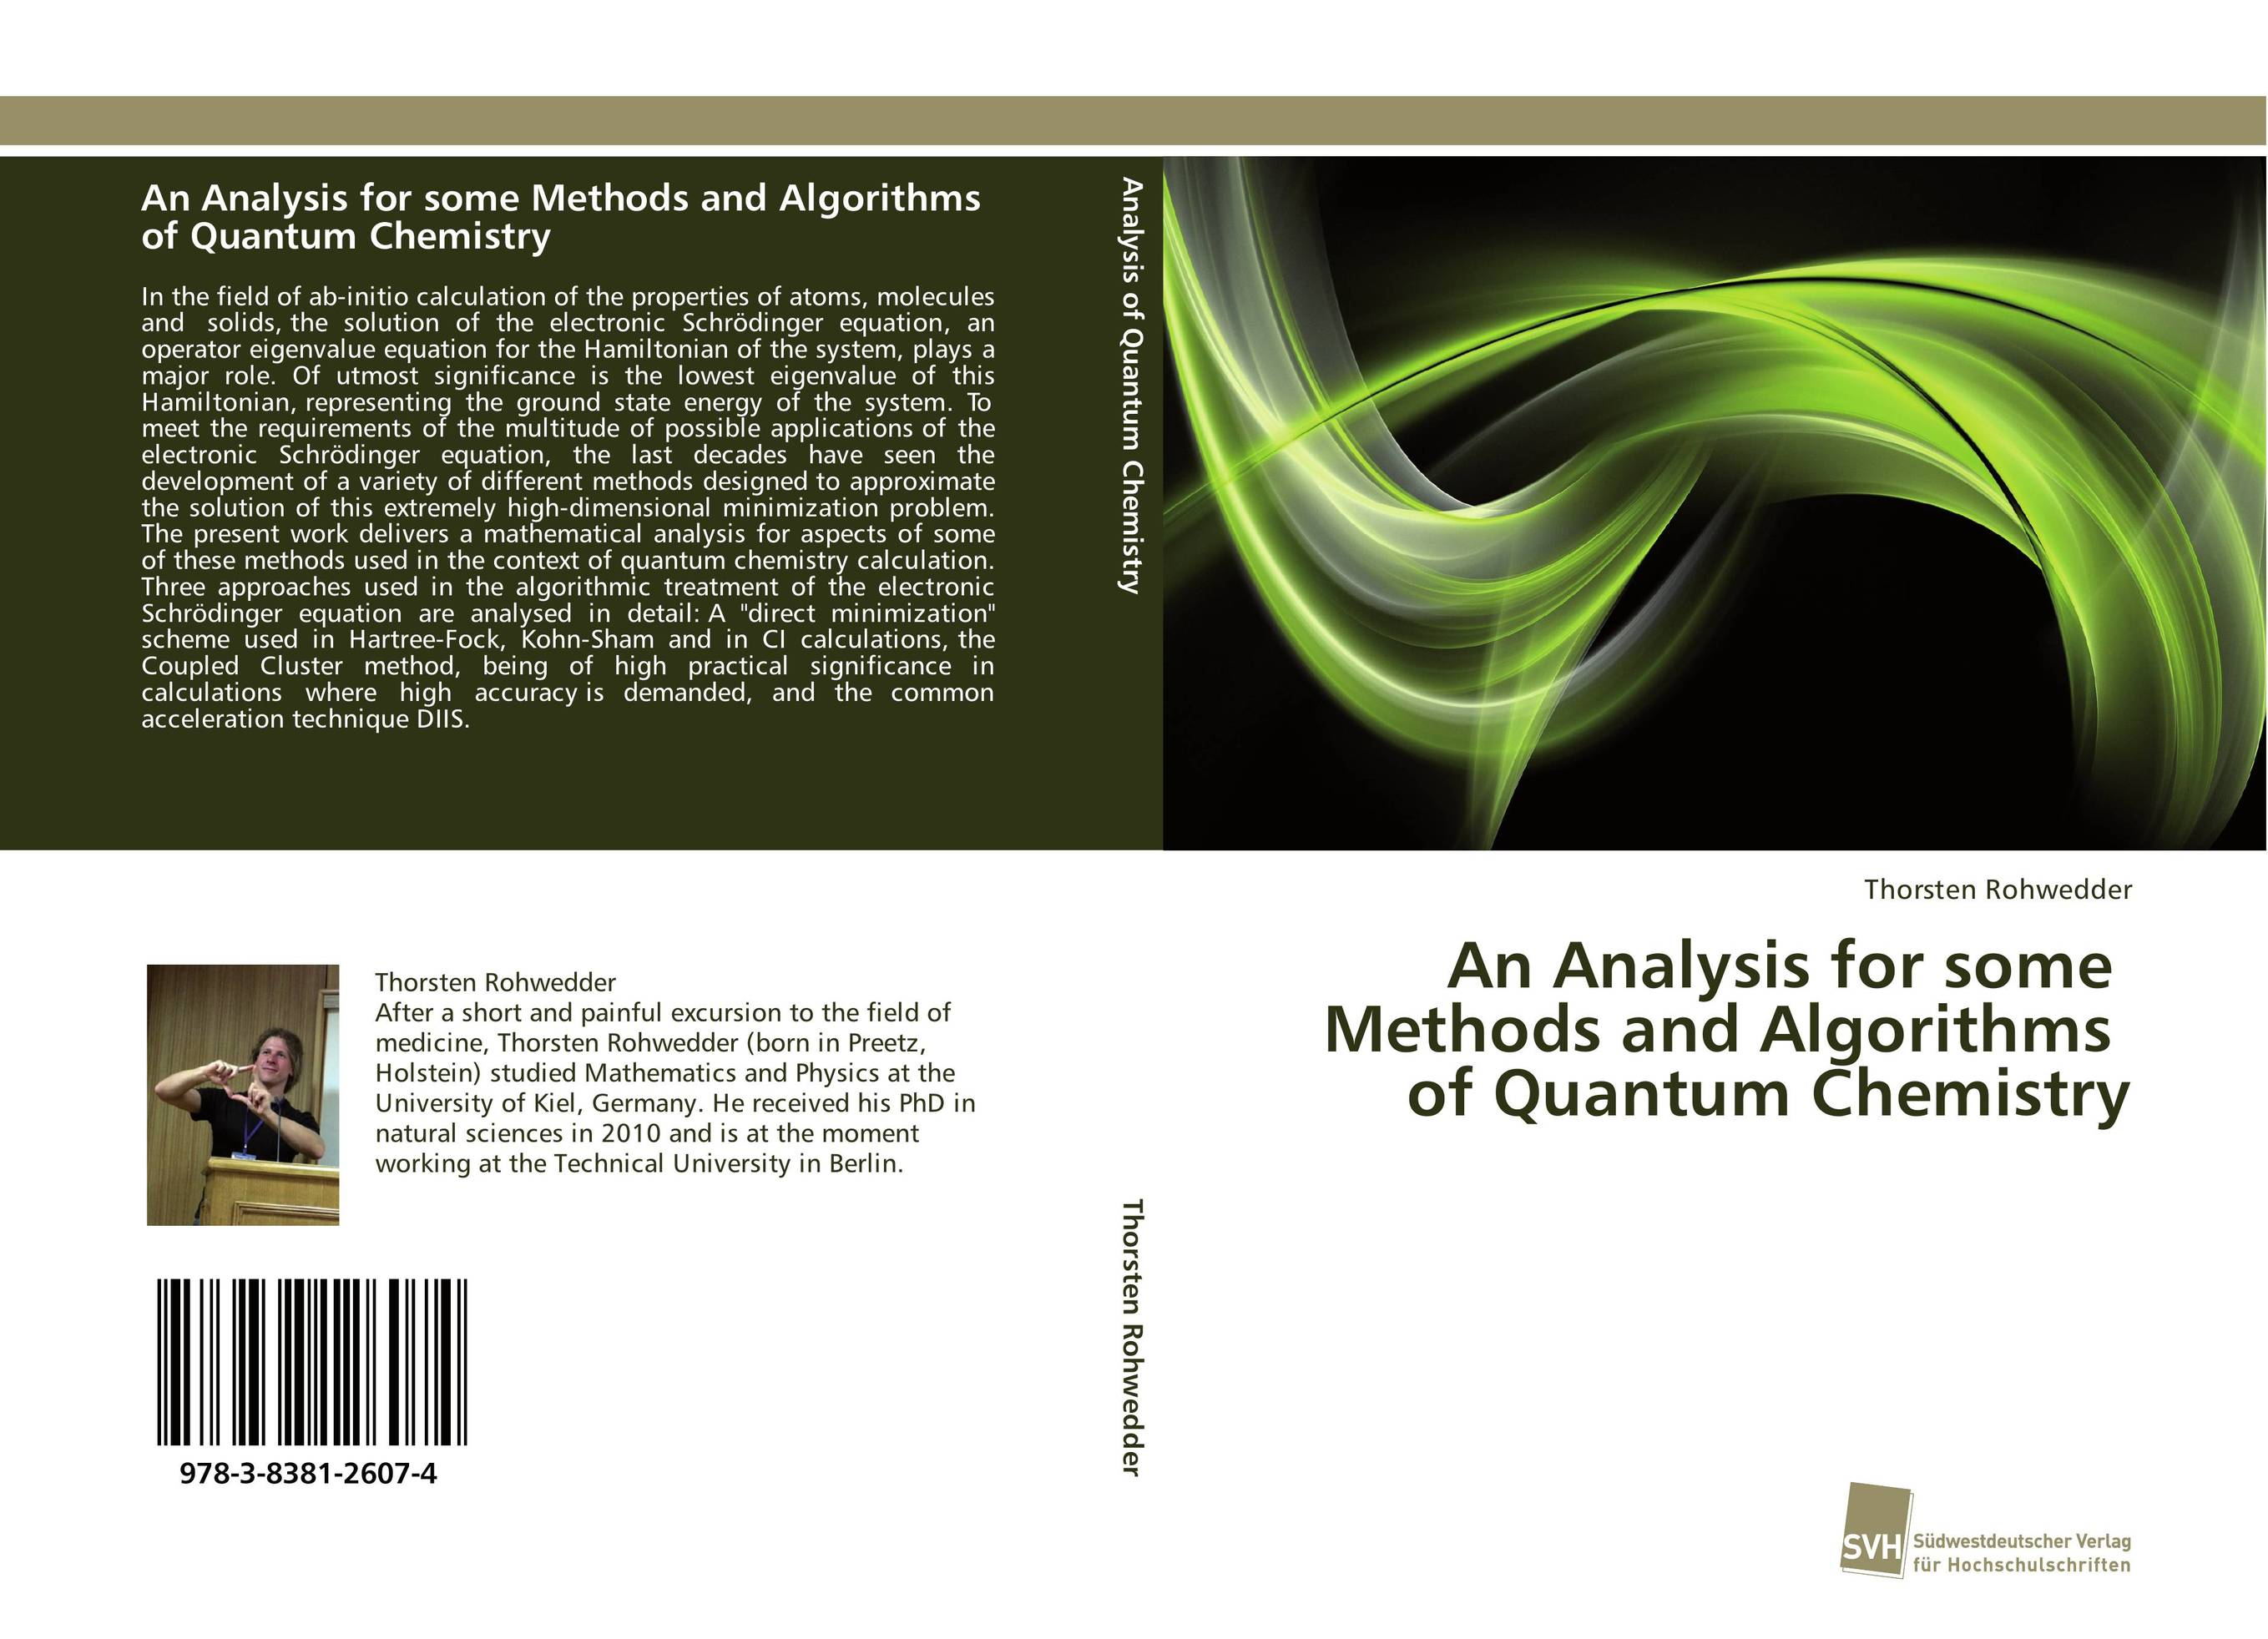 An Analysis for some Methods and Algorithms of Quantum Chemistry belousov a security features of banknotes and other documents methods of authentication manual денежные билеты бланки ценных бумаг и документов